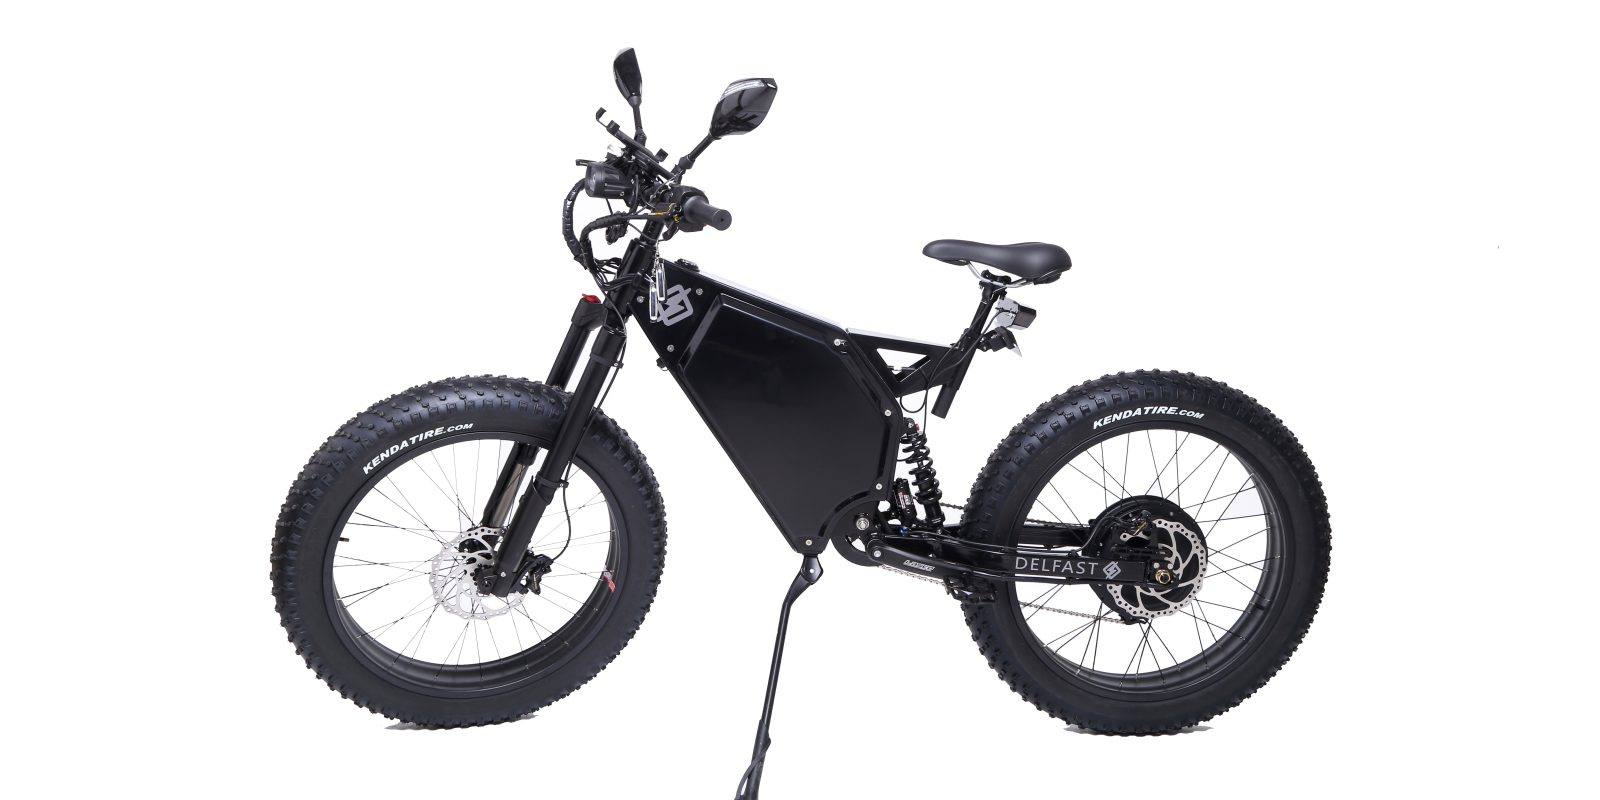 Delfast drops a new 50 mph (80 km/h) off-road electric bicycle on us